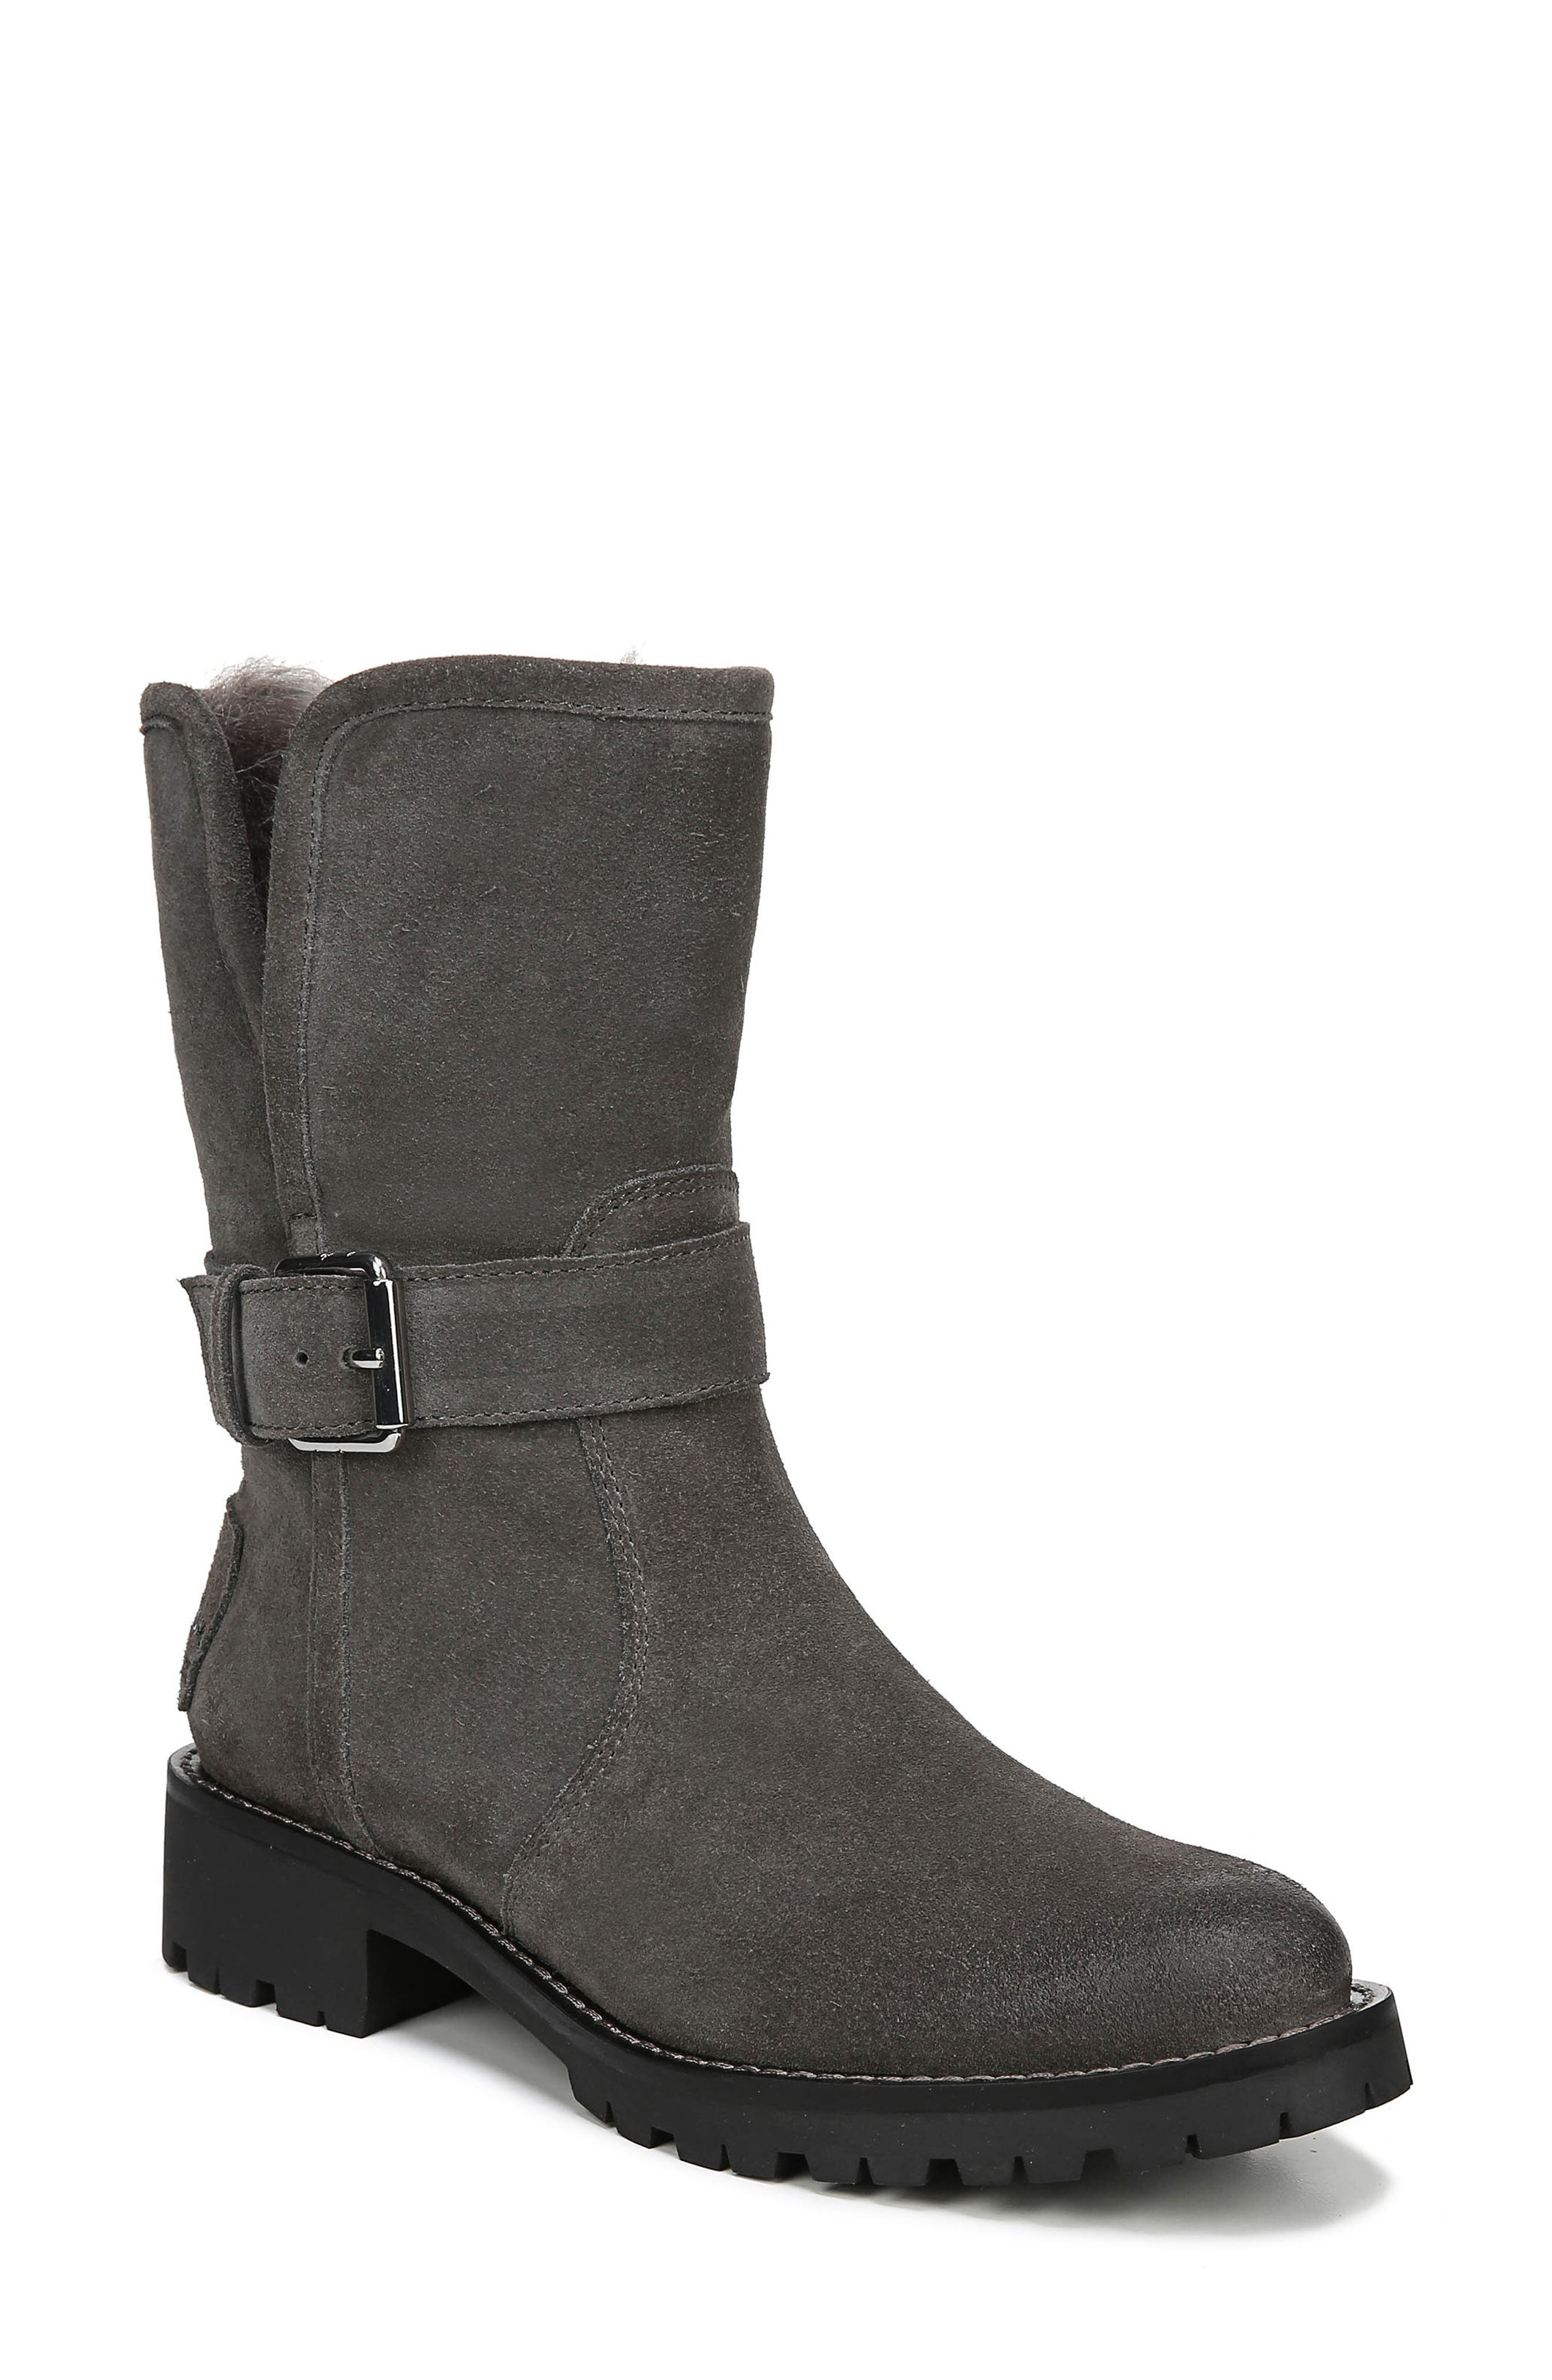 Jeanie Boot,                         Main,                         color, STEEL GREY SUEDE